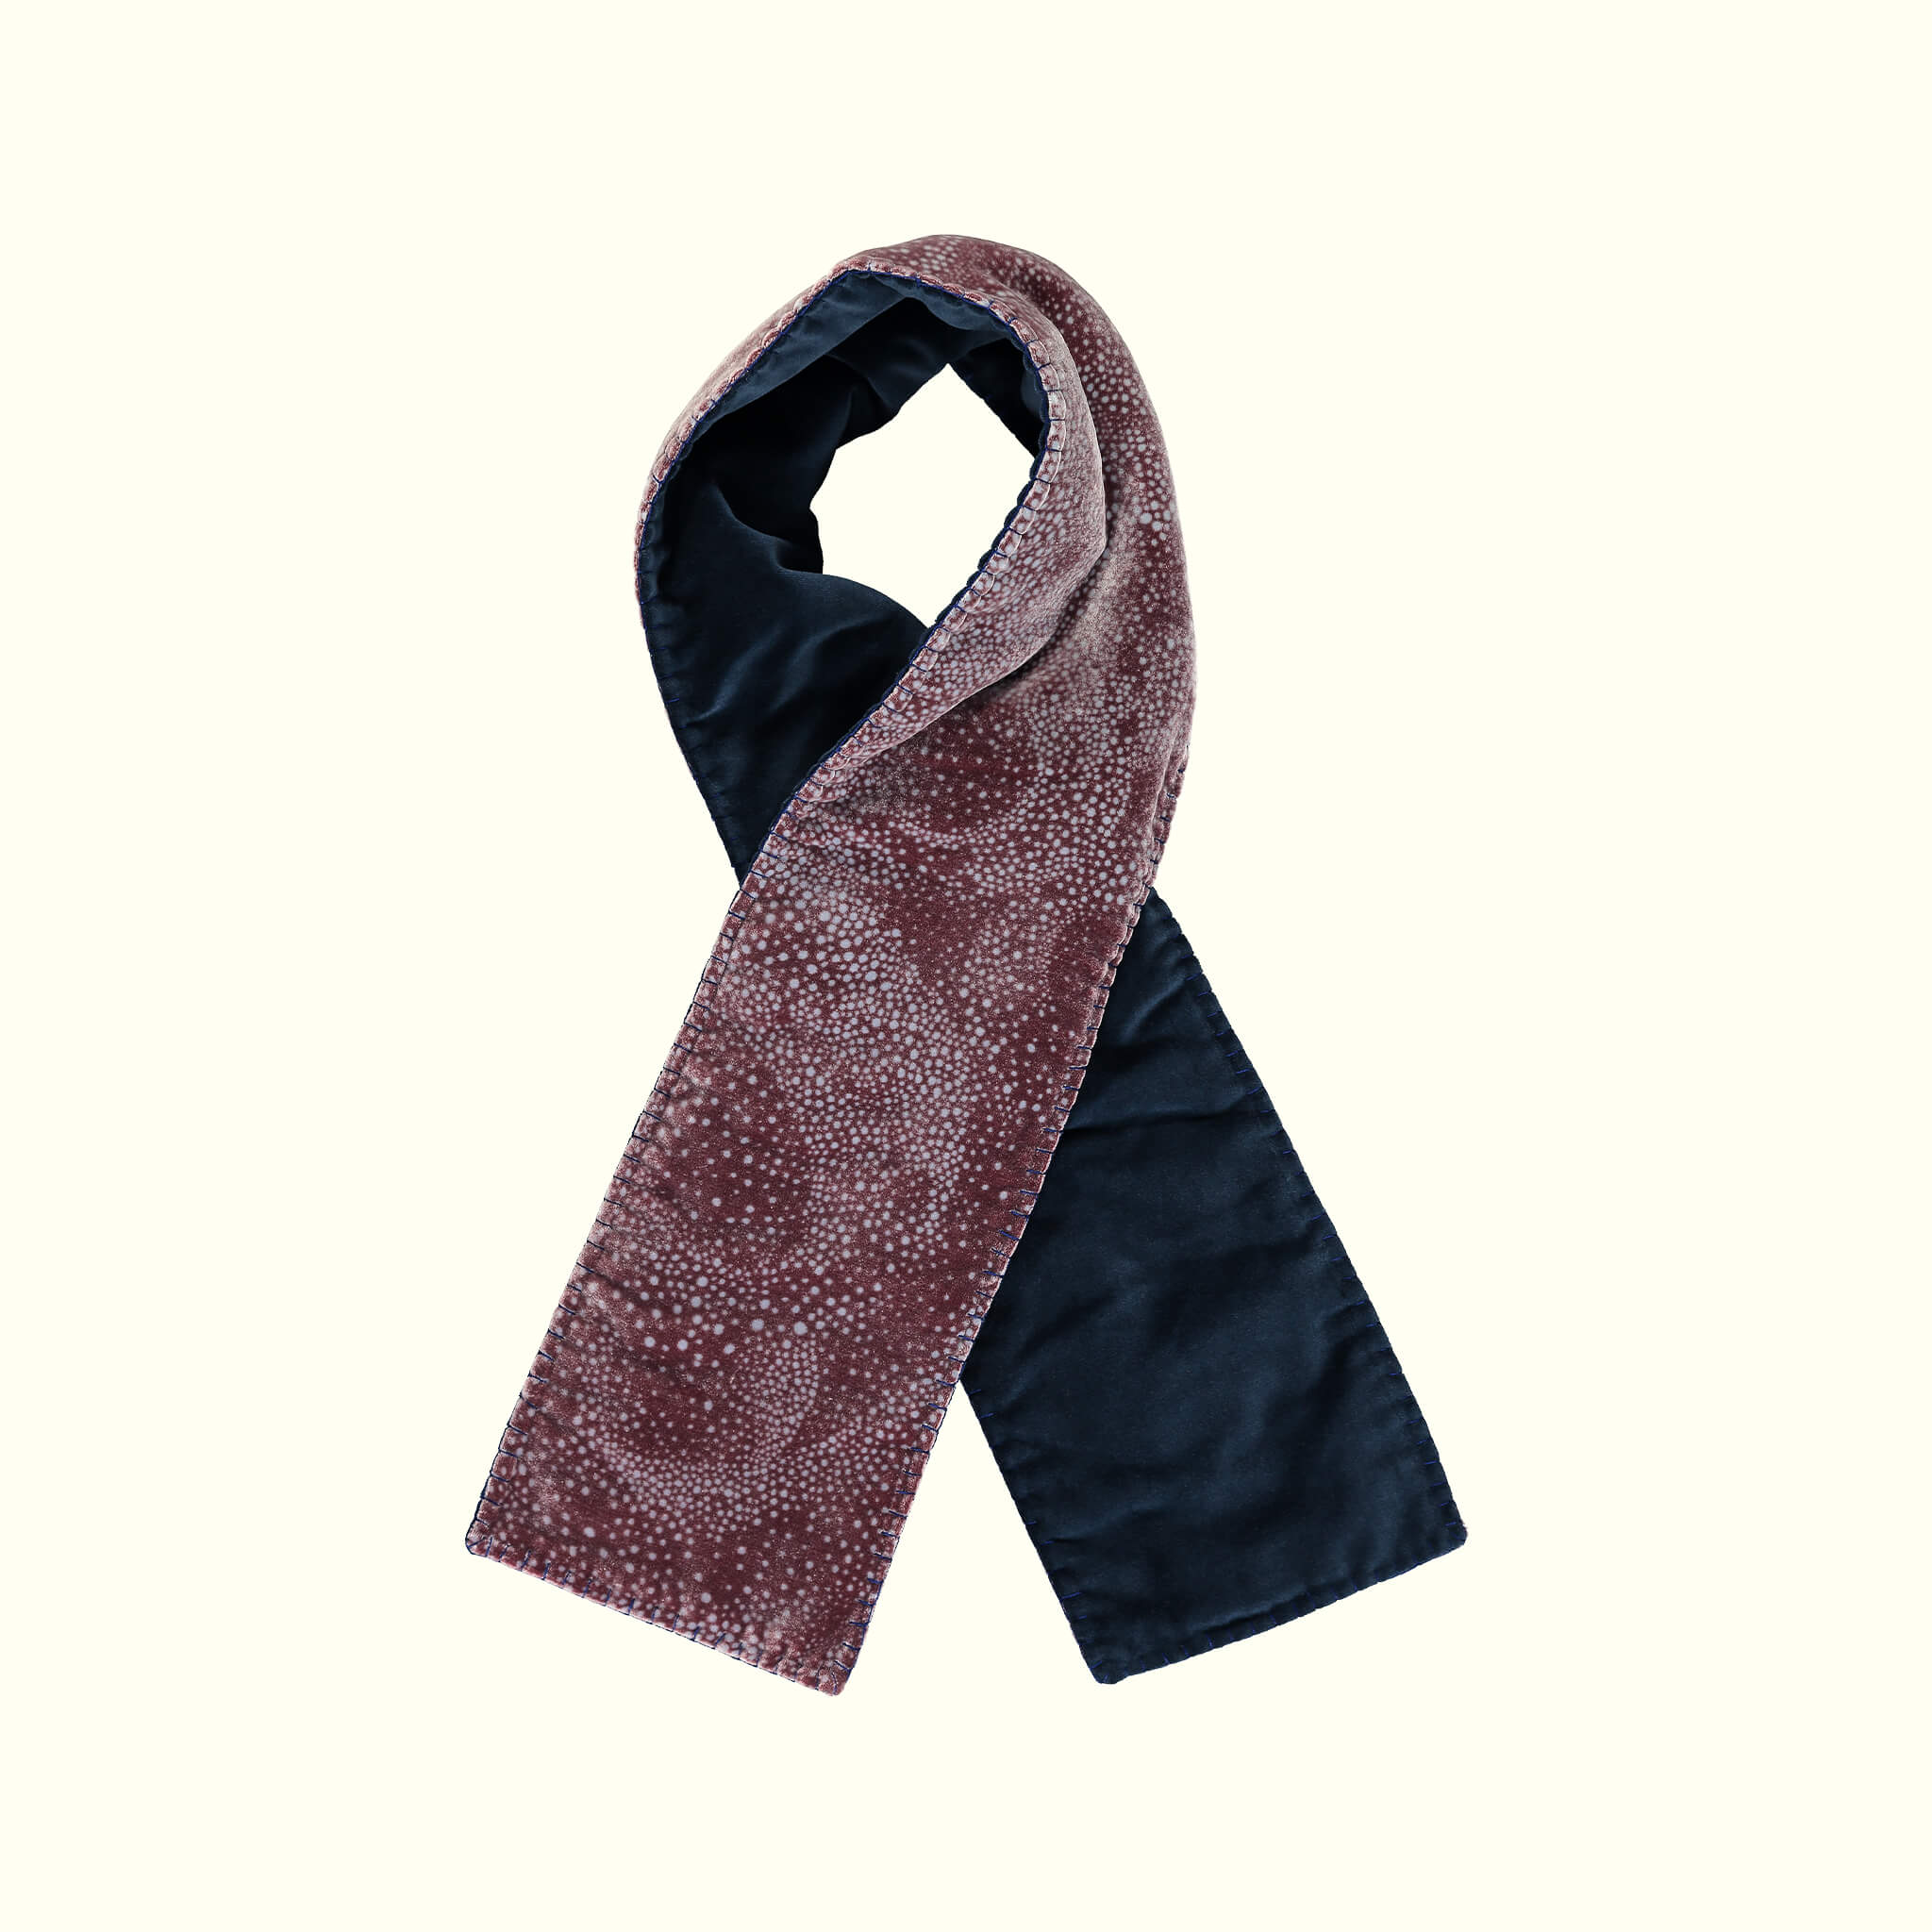 A luxury British silk velvet scarf by GVE in oxblood Aurora print design.